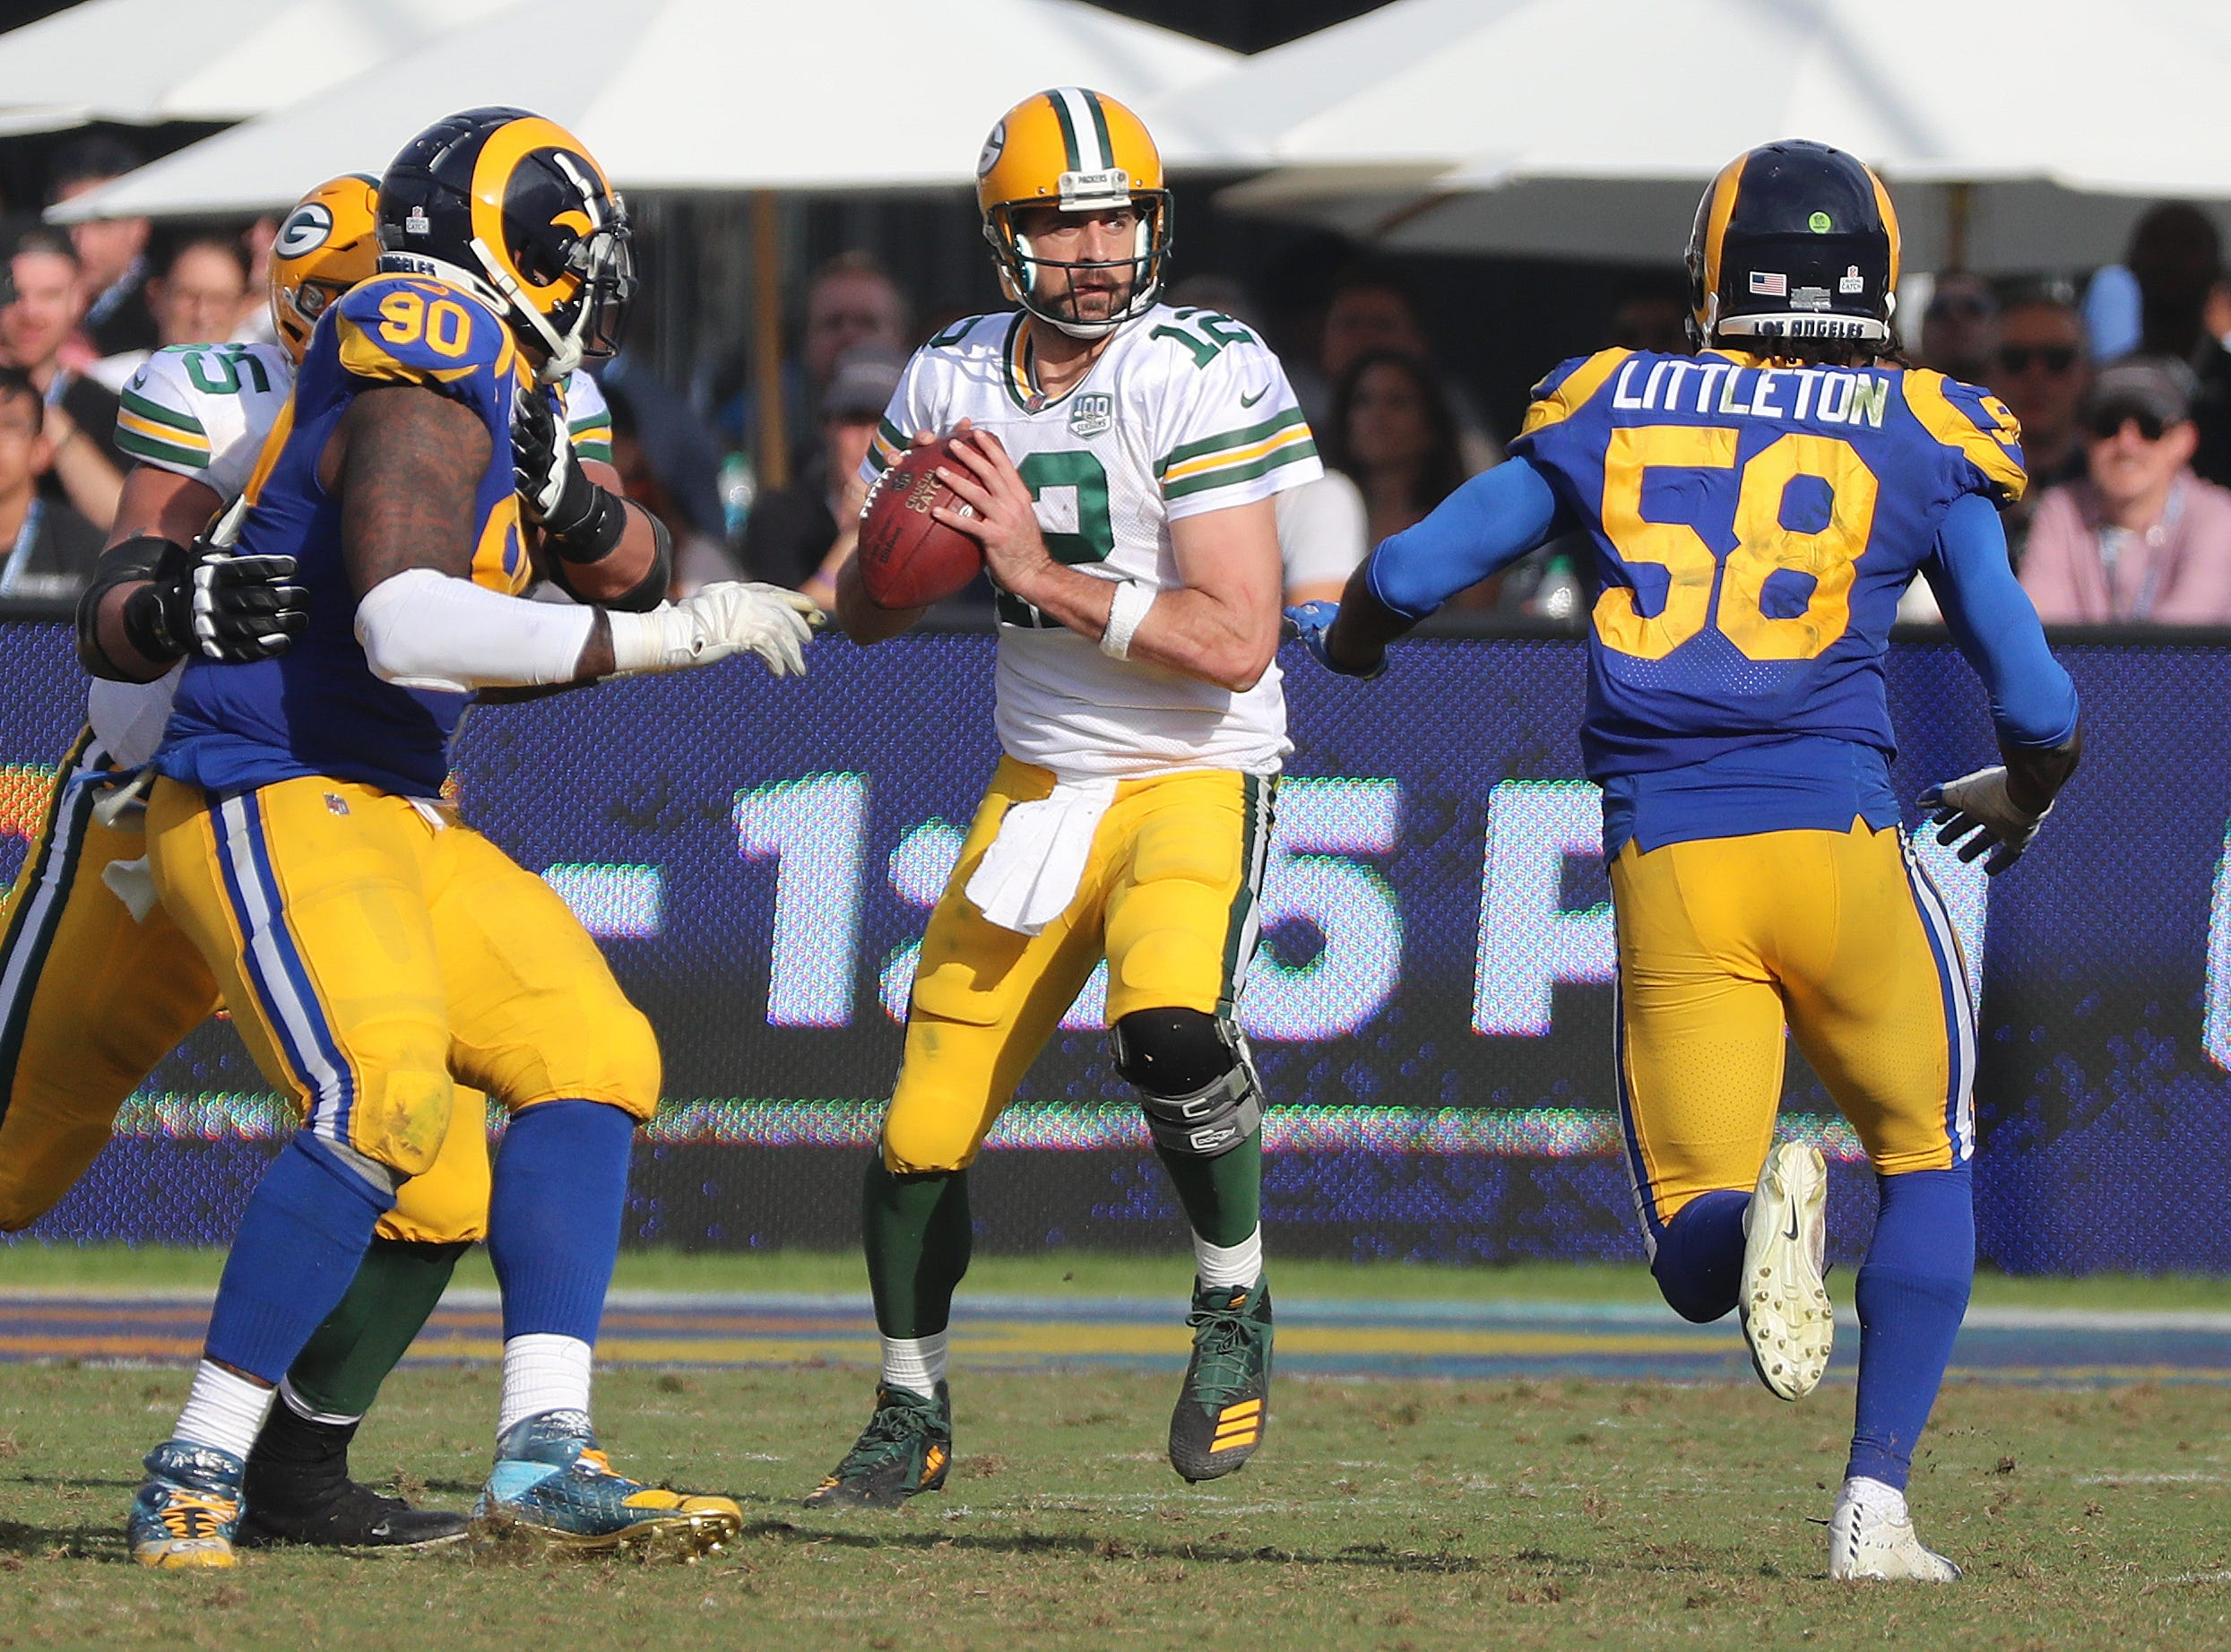 Green Bay Packers quarterback Aaron Rodgers (12) throws under pressure against the LA Rams Sunday, October 28, 2018 at the Memorial Coliseum in Los Angeles.